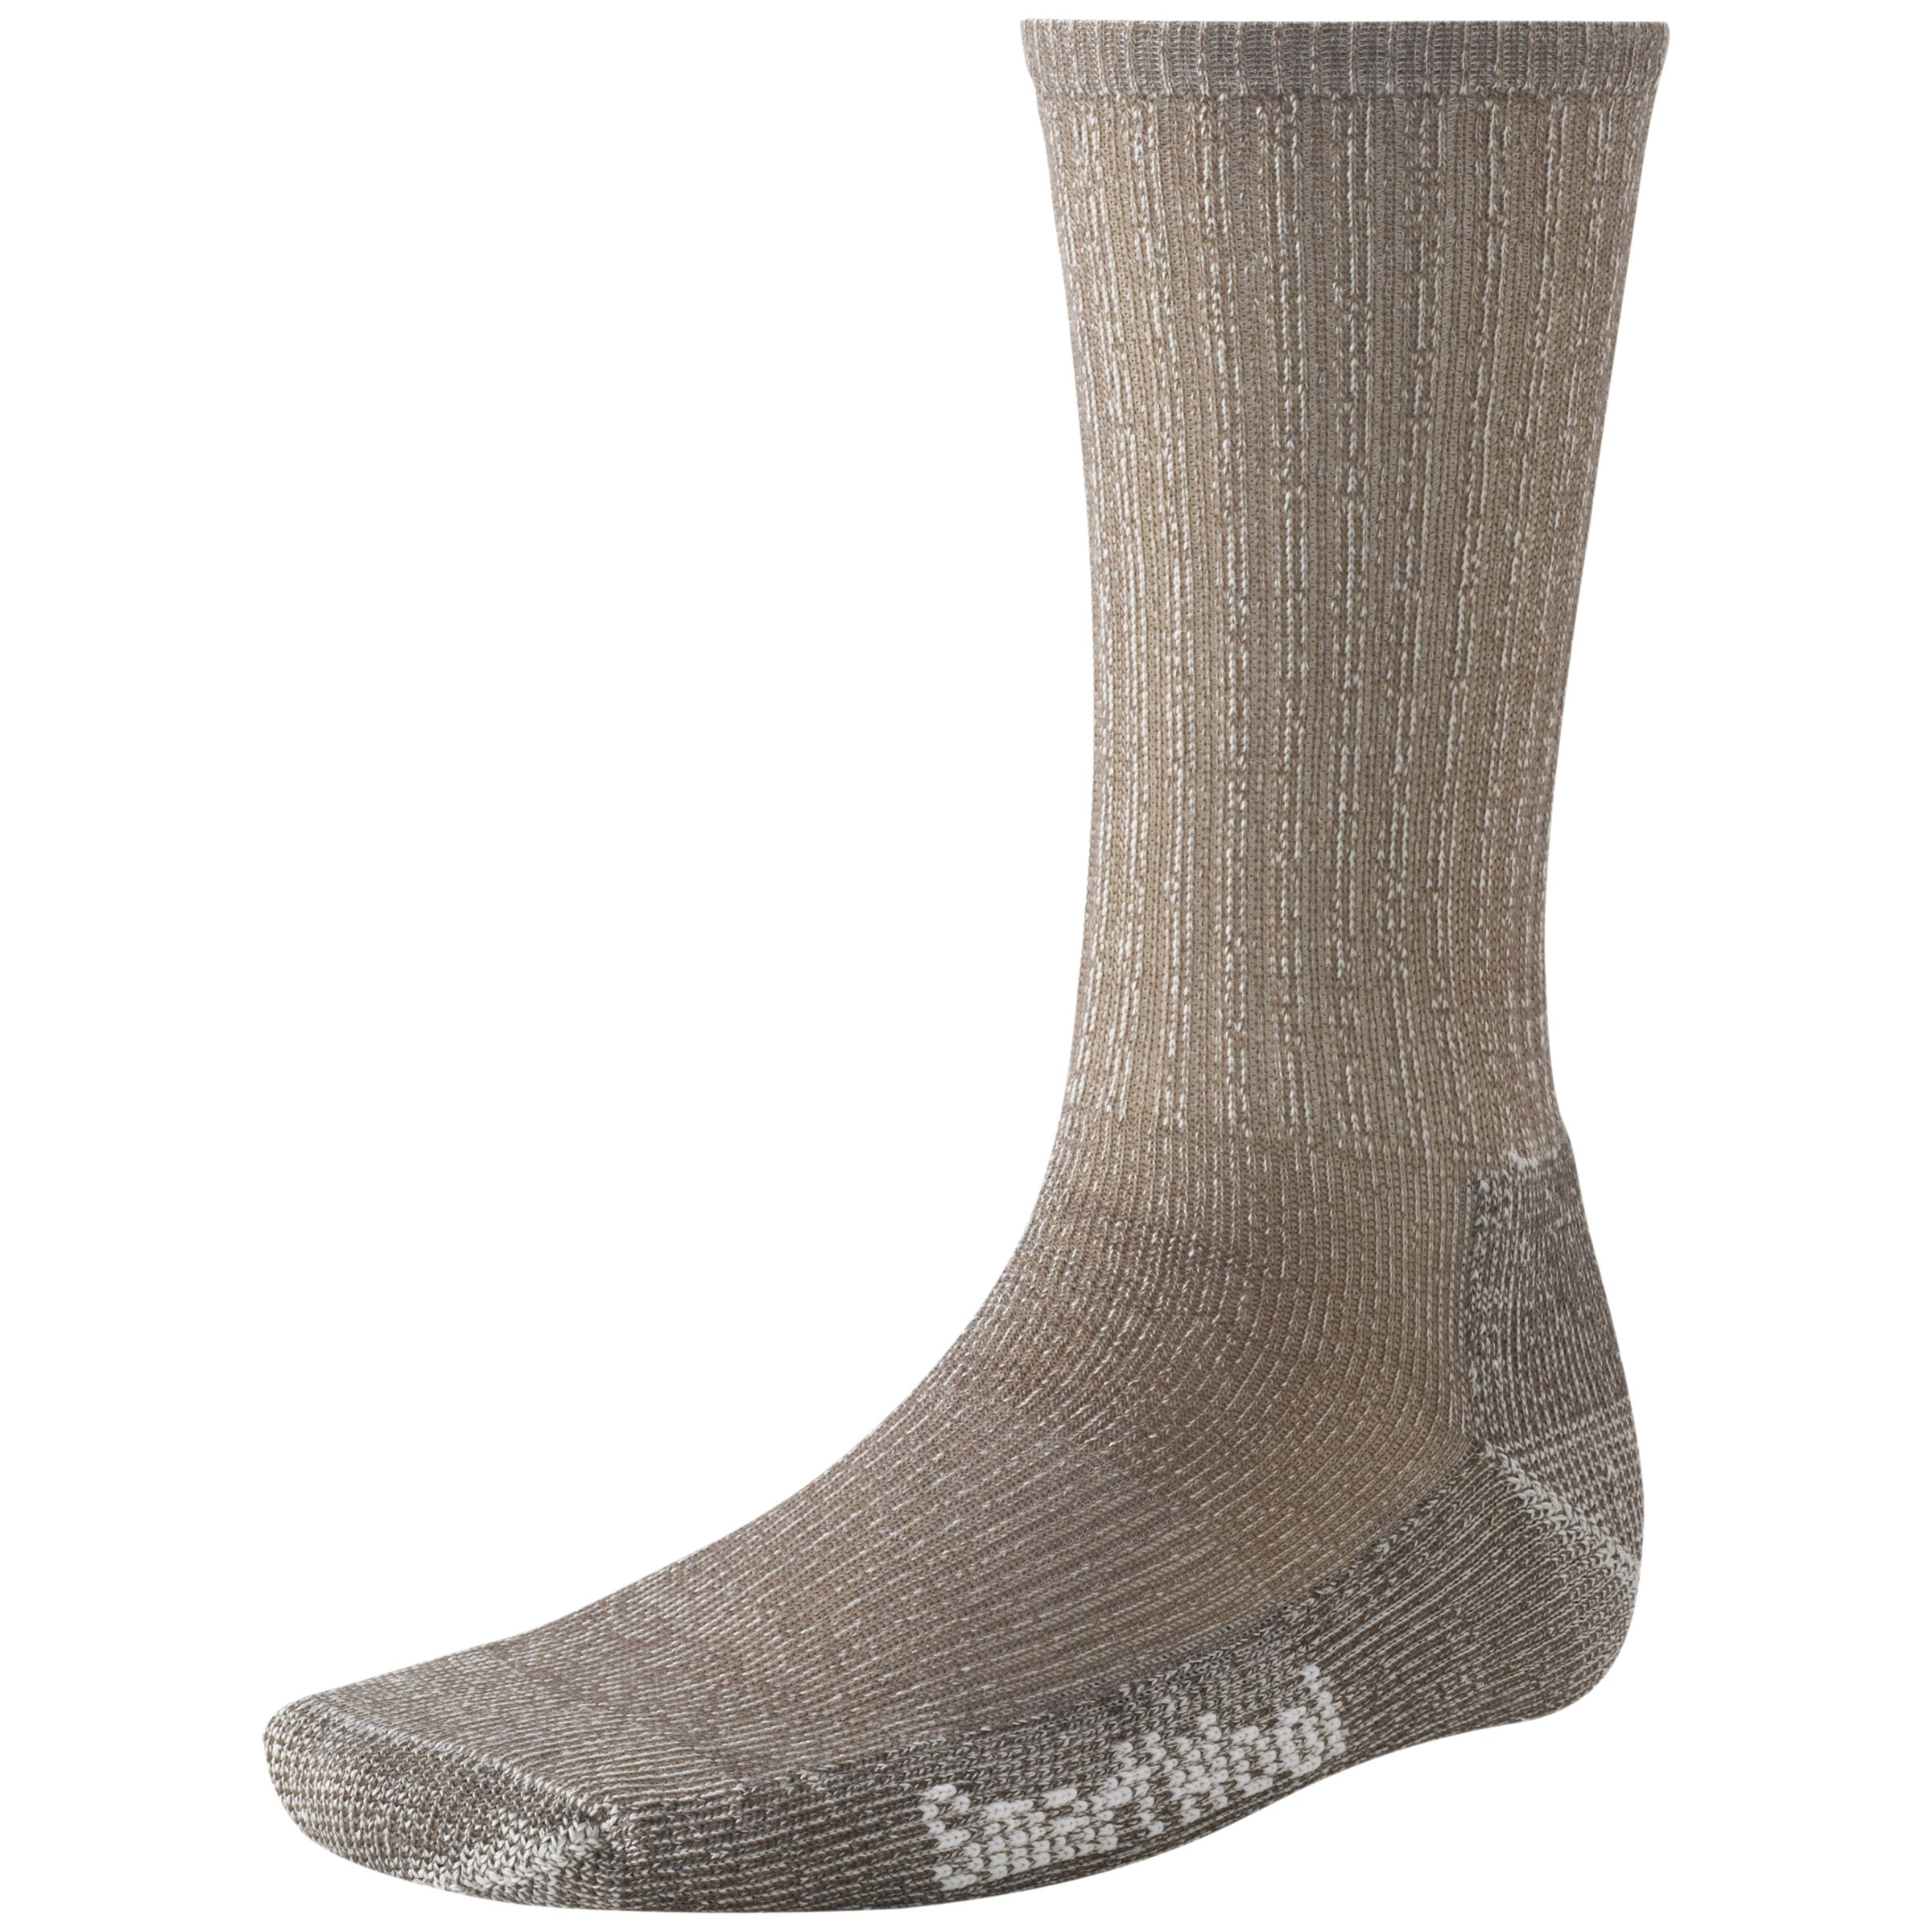 Smartwool SmartWool Hike Light Crew Socks, Taupe